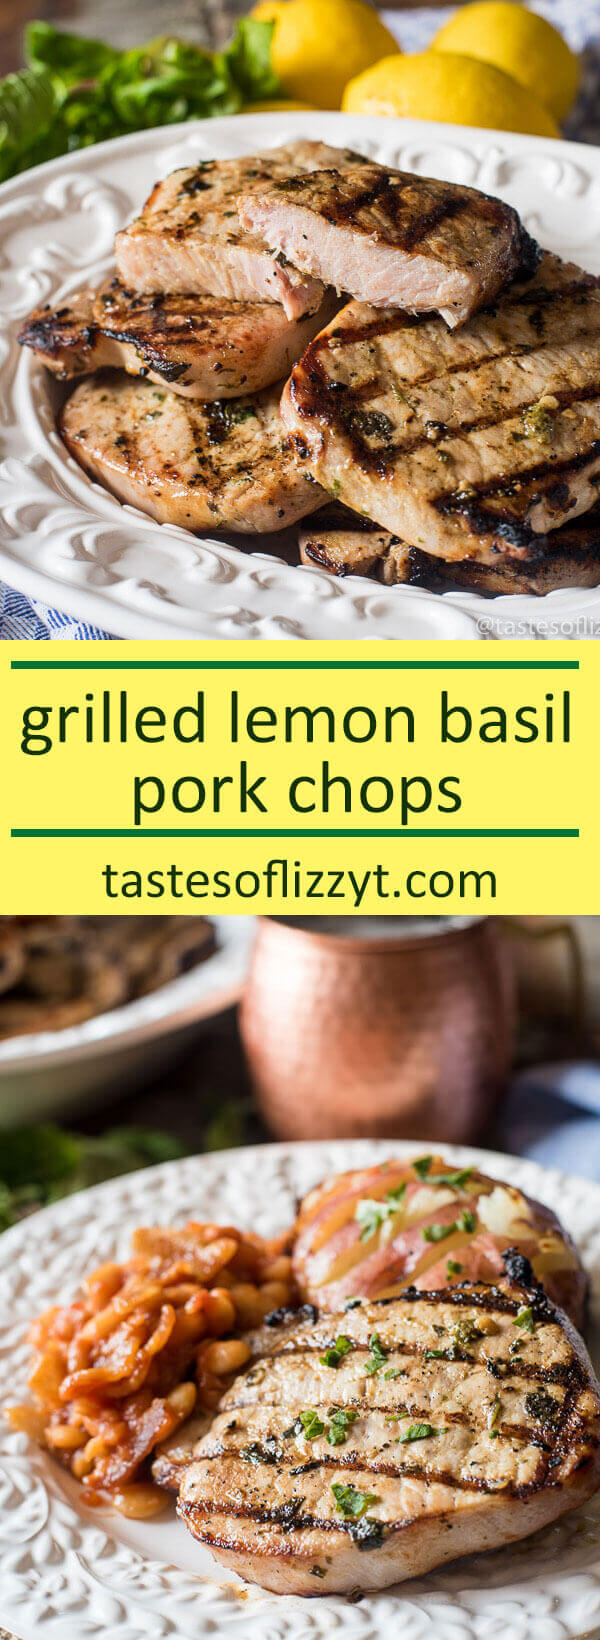 An easy, 4-ingredient marinade makes for the most tender Grilled Basil Lemon Pork Chops. Throw ingredients together in under 5 minutes, marinate, and grill! paleo recipe, whole30 recipe idea / whole30 picnic